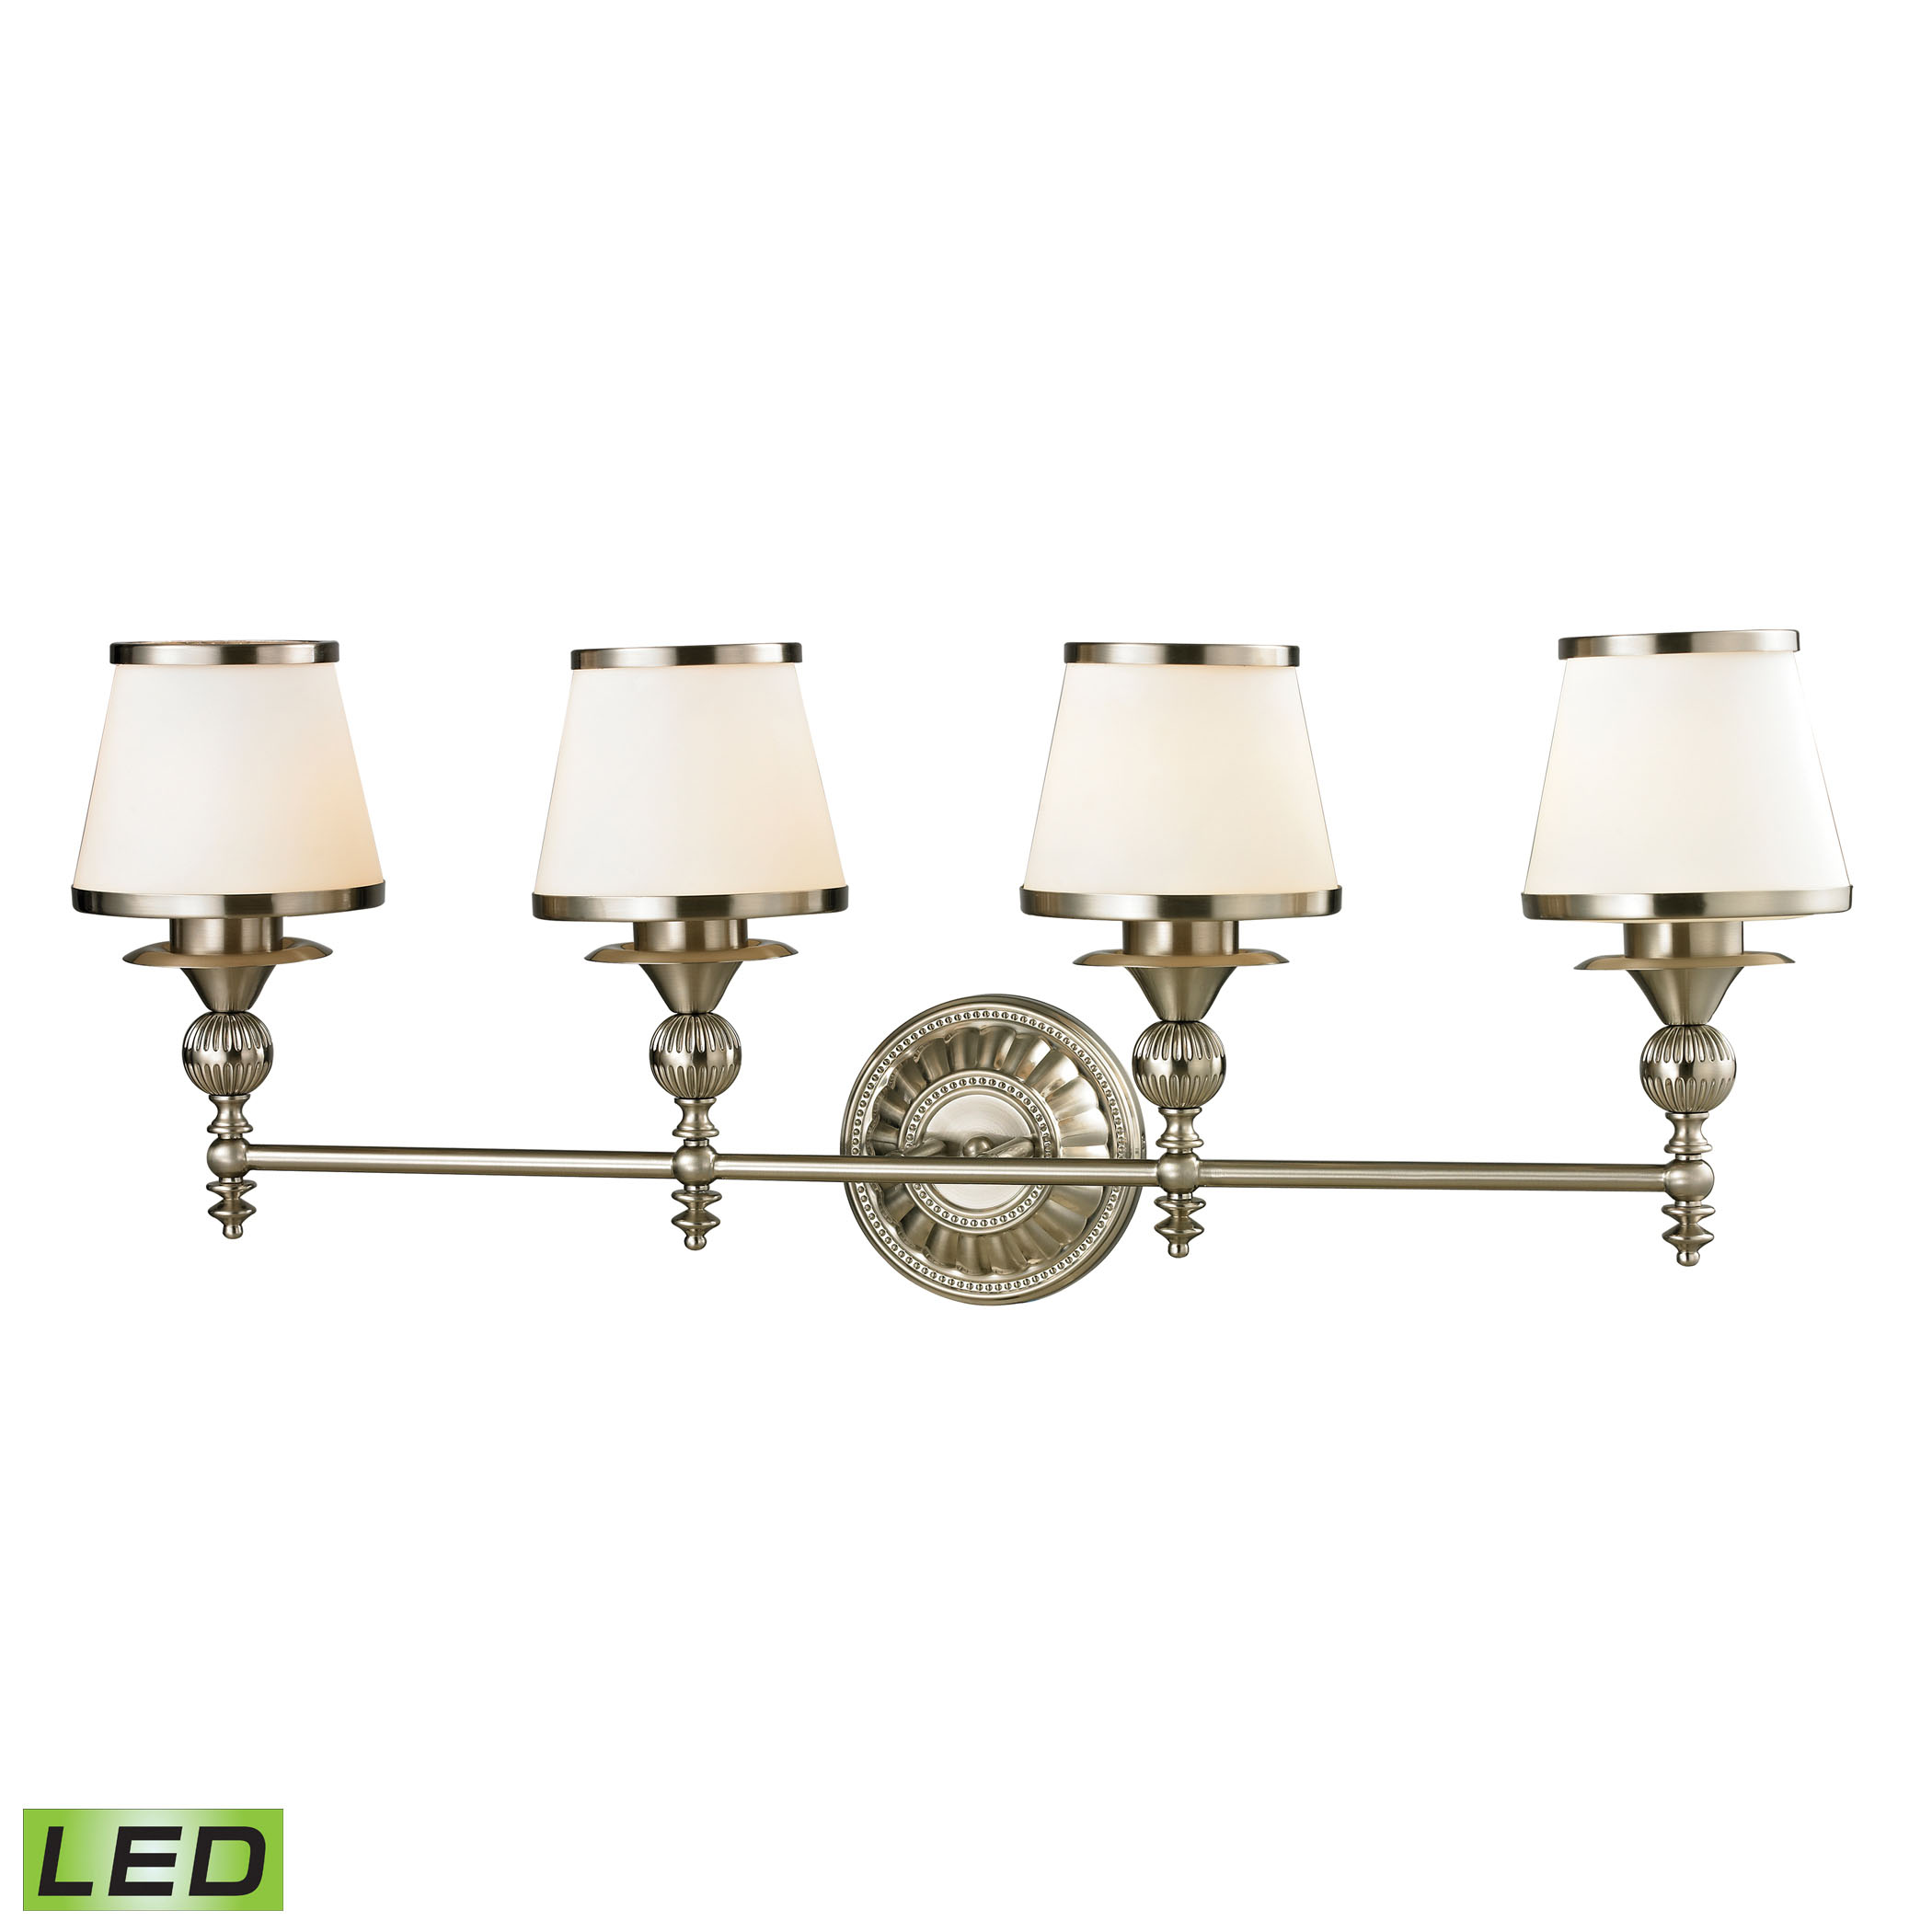 Smithfield Collection 4 Light Bath in Brushed Nickel - LED, 800 Lumens (3200 Lumens Total) with Full